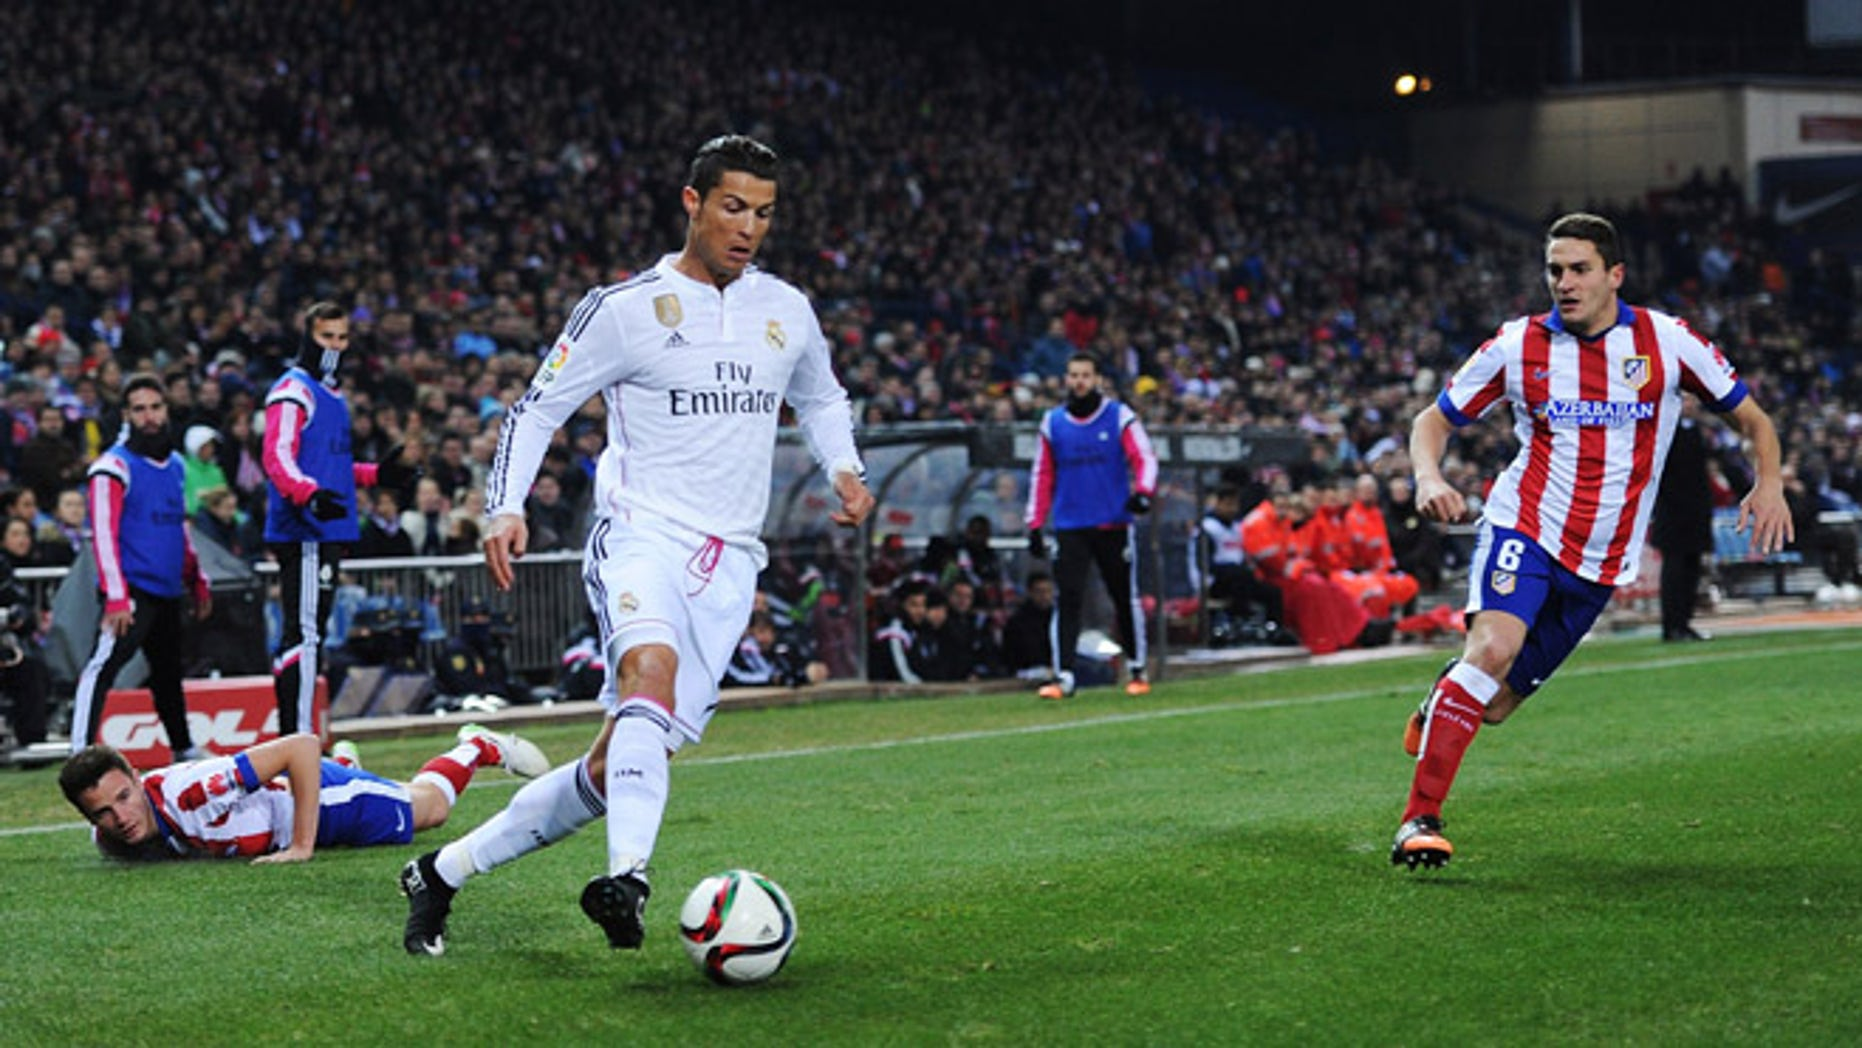 Cristiano Ronaldo gets past Ruben Mesa during match between Club Atletico and Real Madrid on January 7, 2015 in Madrid, Spain.